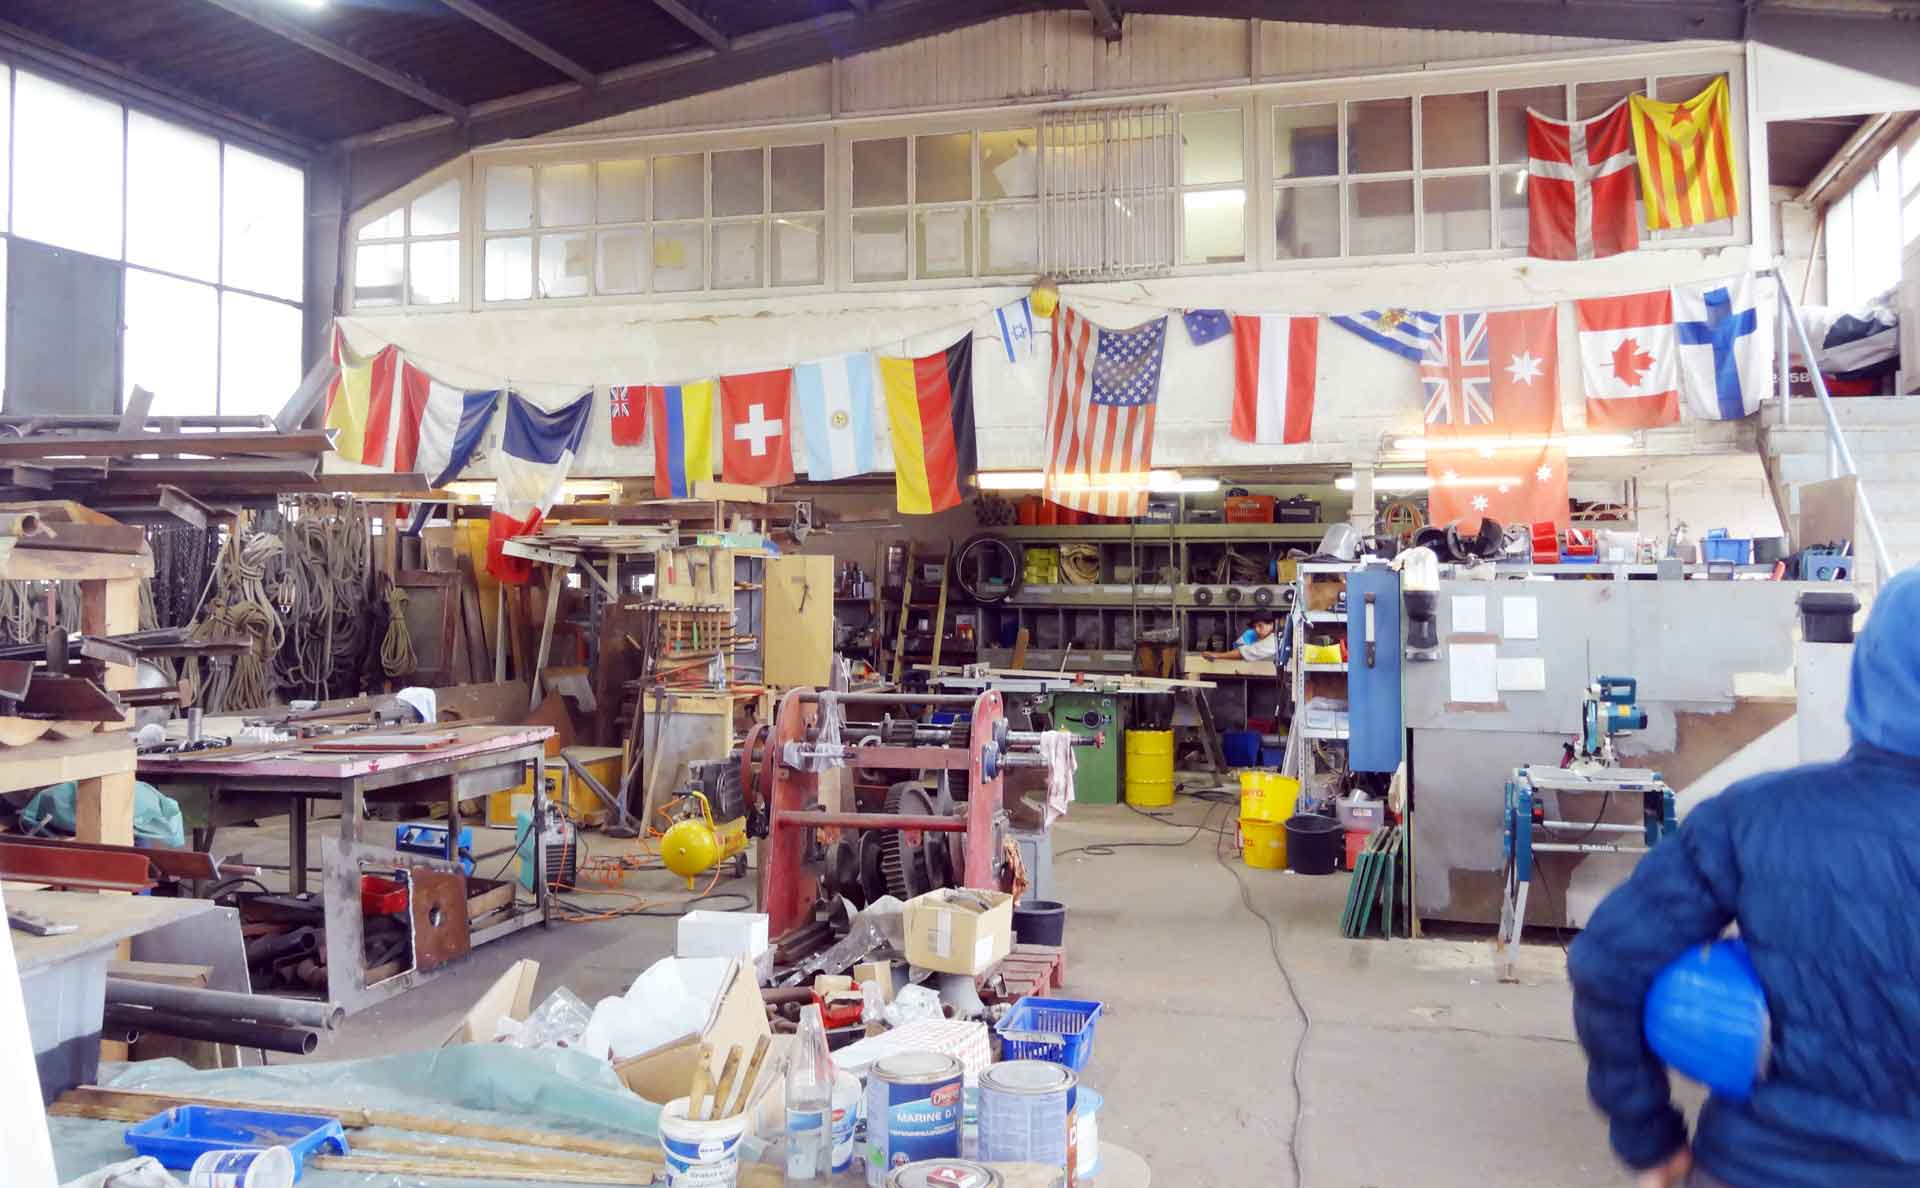 The Shop: Every Volunteer leaves his Mark. An a Flag.